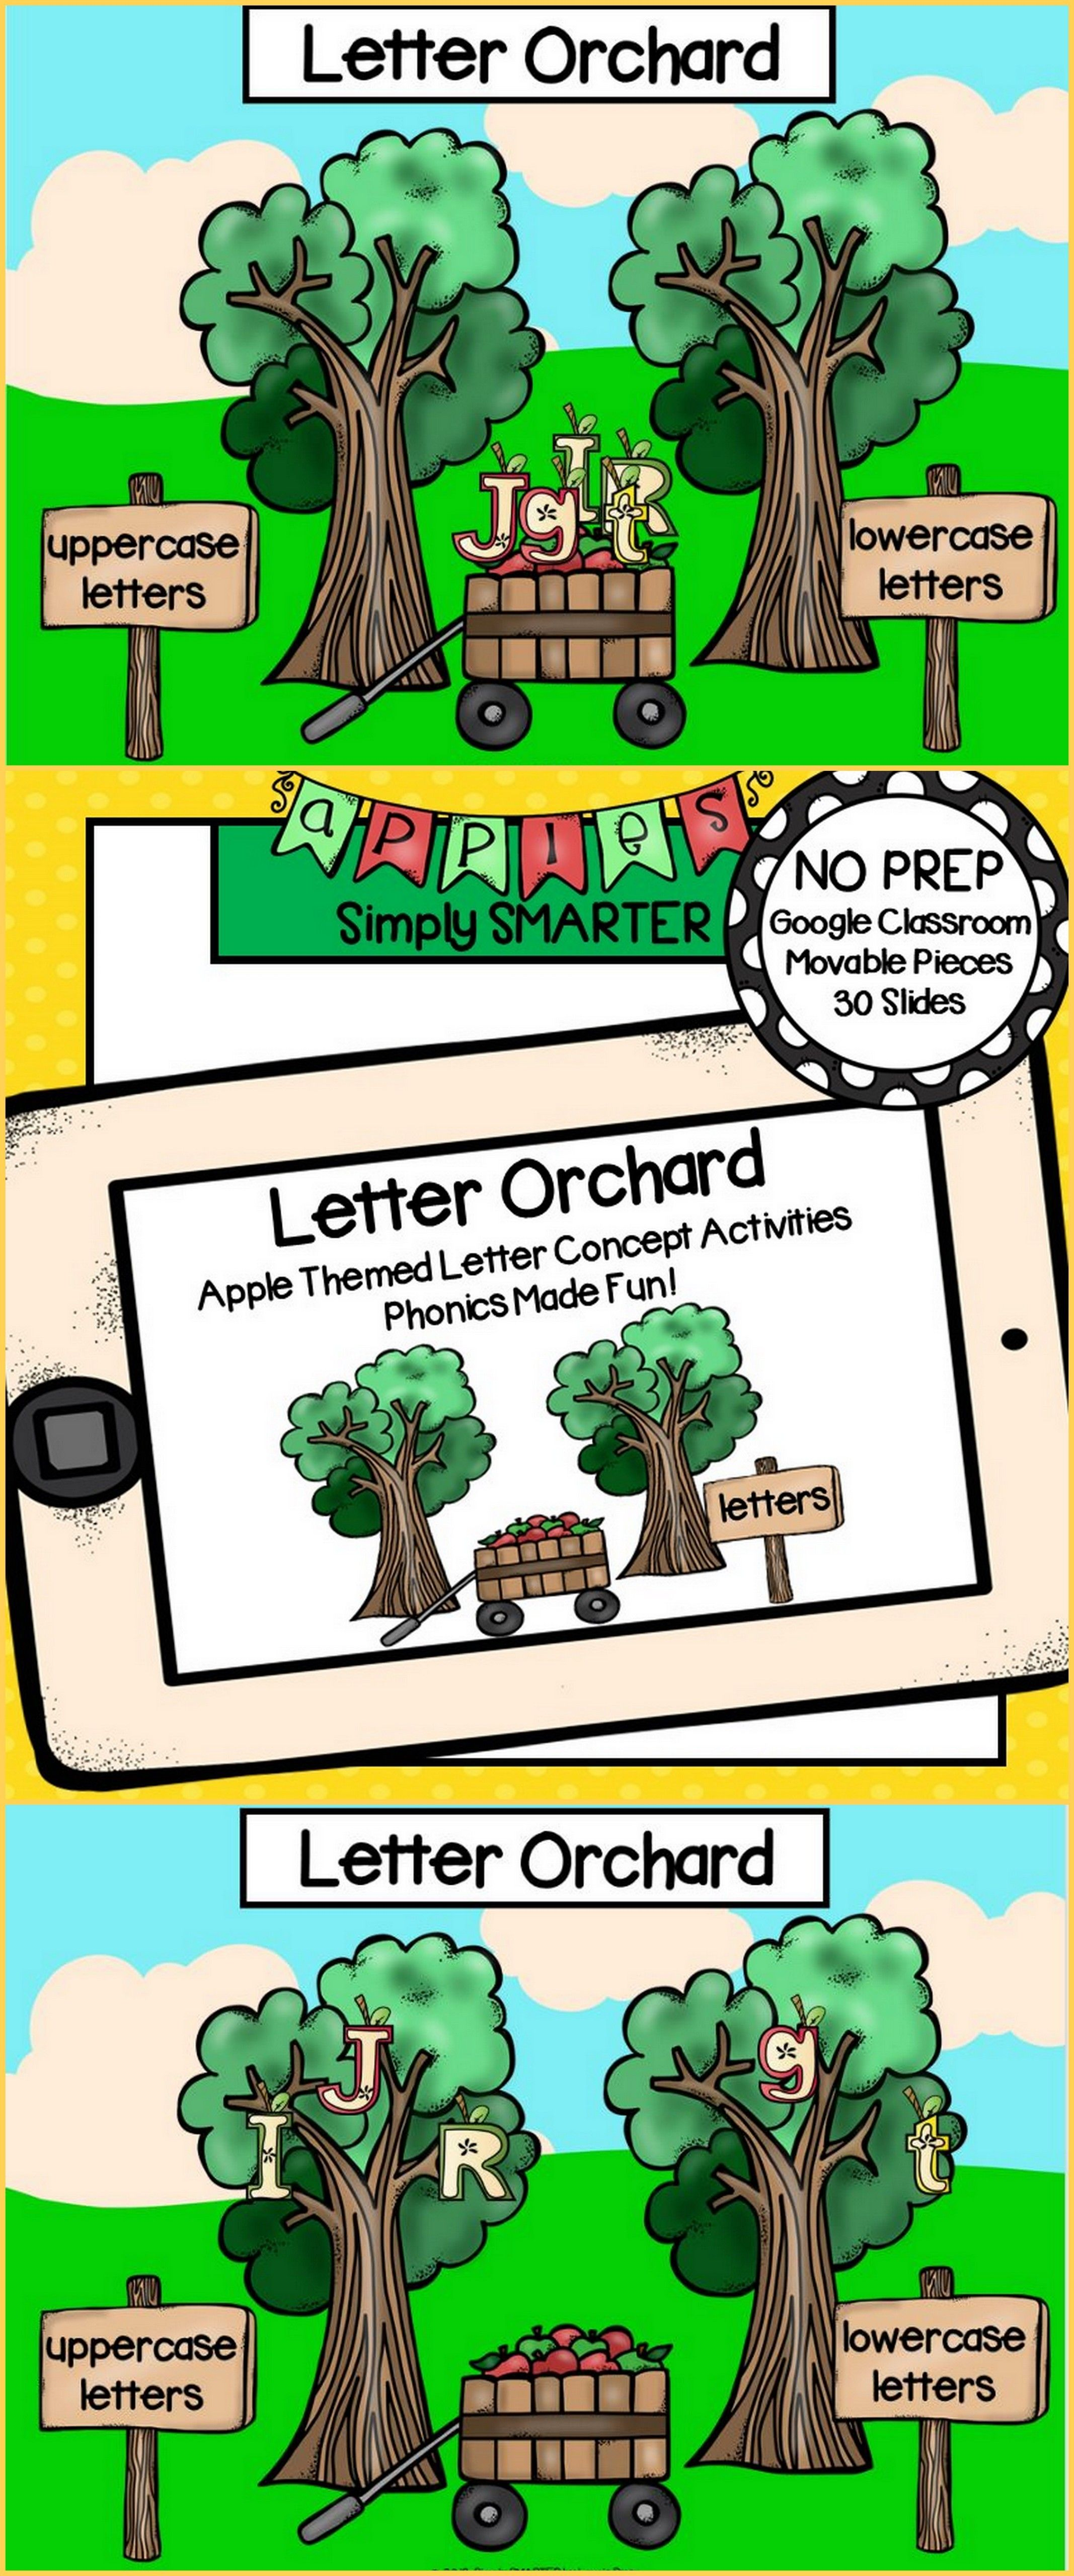 Apple Themed Letter Concept Activities For